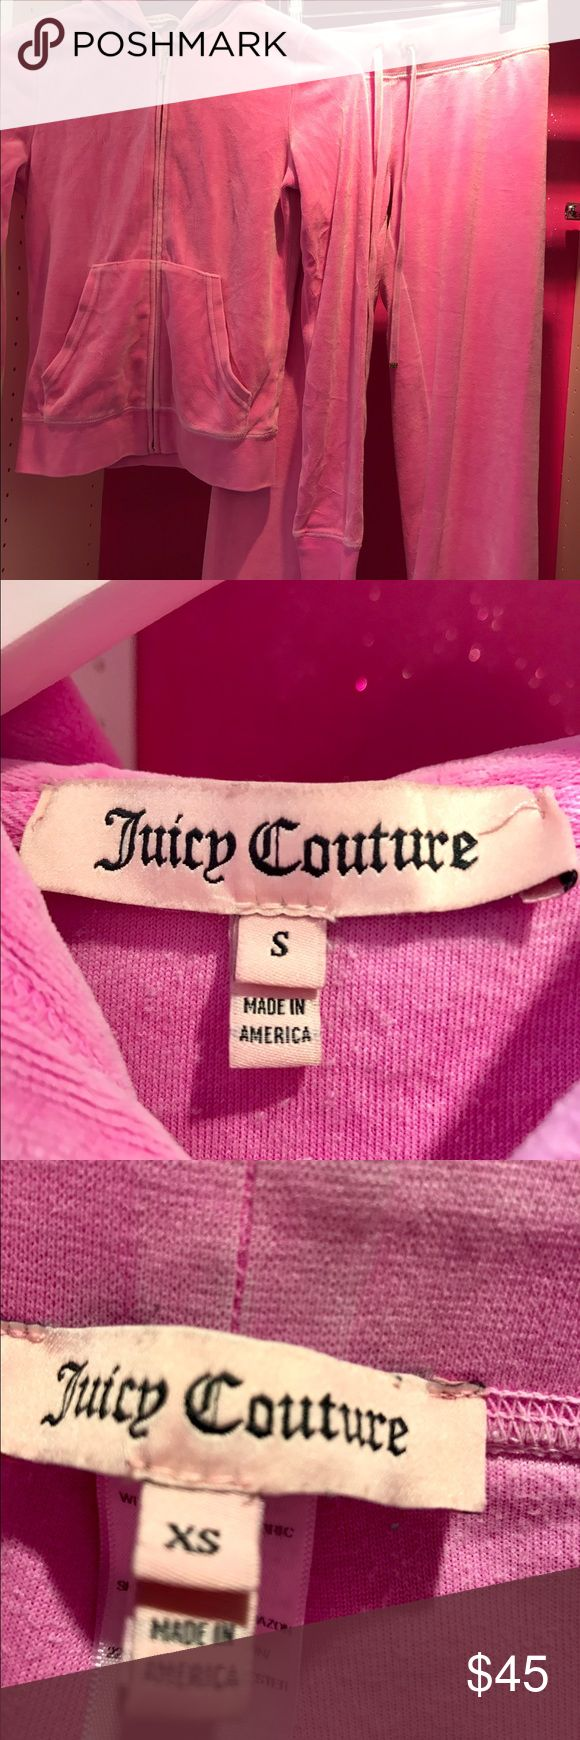 Juicy Couture distressed pink vintage tracksuit Juicy Couture distressed pink vintage tracksuit extremely soft in superb condition except that one of the gold accents on the pant ties has come off. Otherwise almost new. The top is a S and the pants are a XS . The shade of pink is gorgeous! Juicy Couture Other